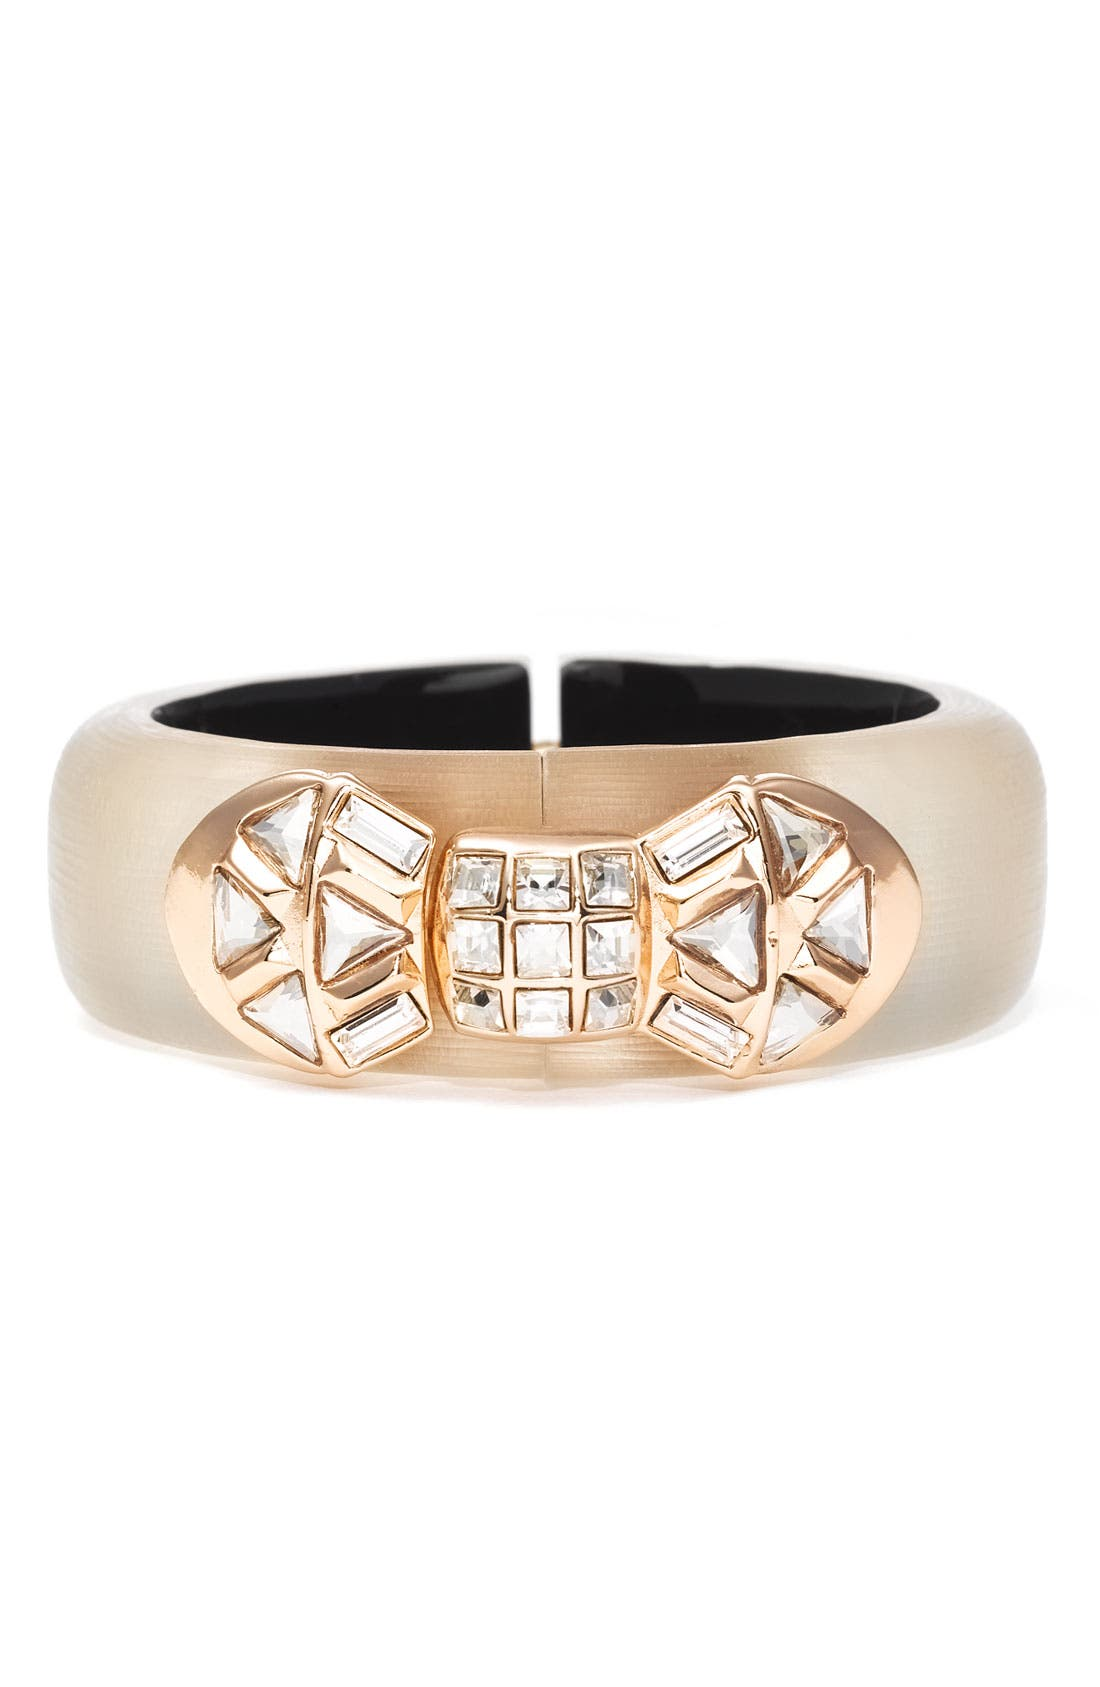 Main Image - Alexis Bittar Bow Tie Hinged Bangle